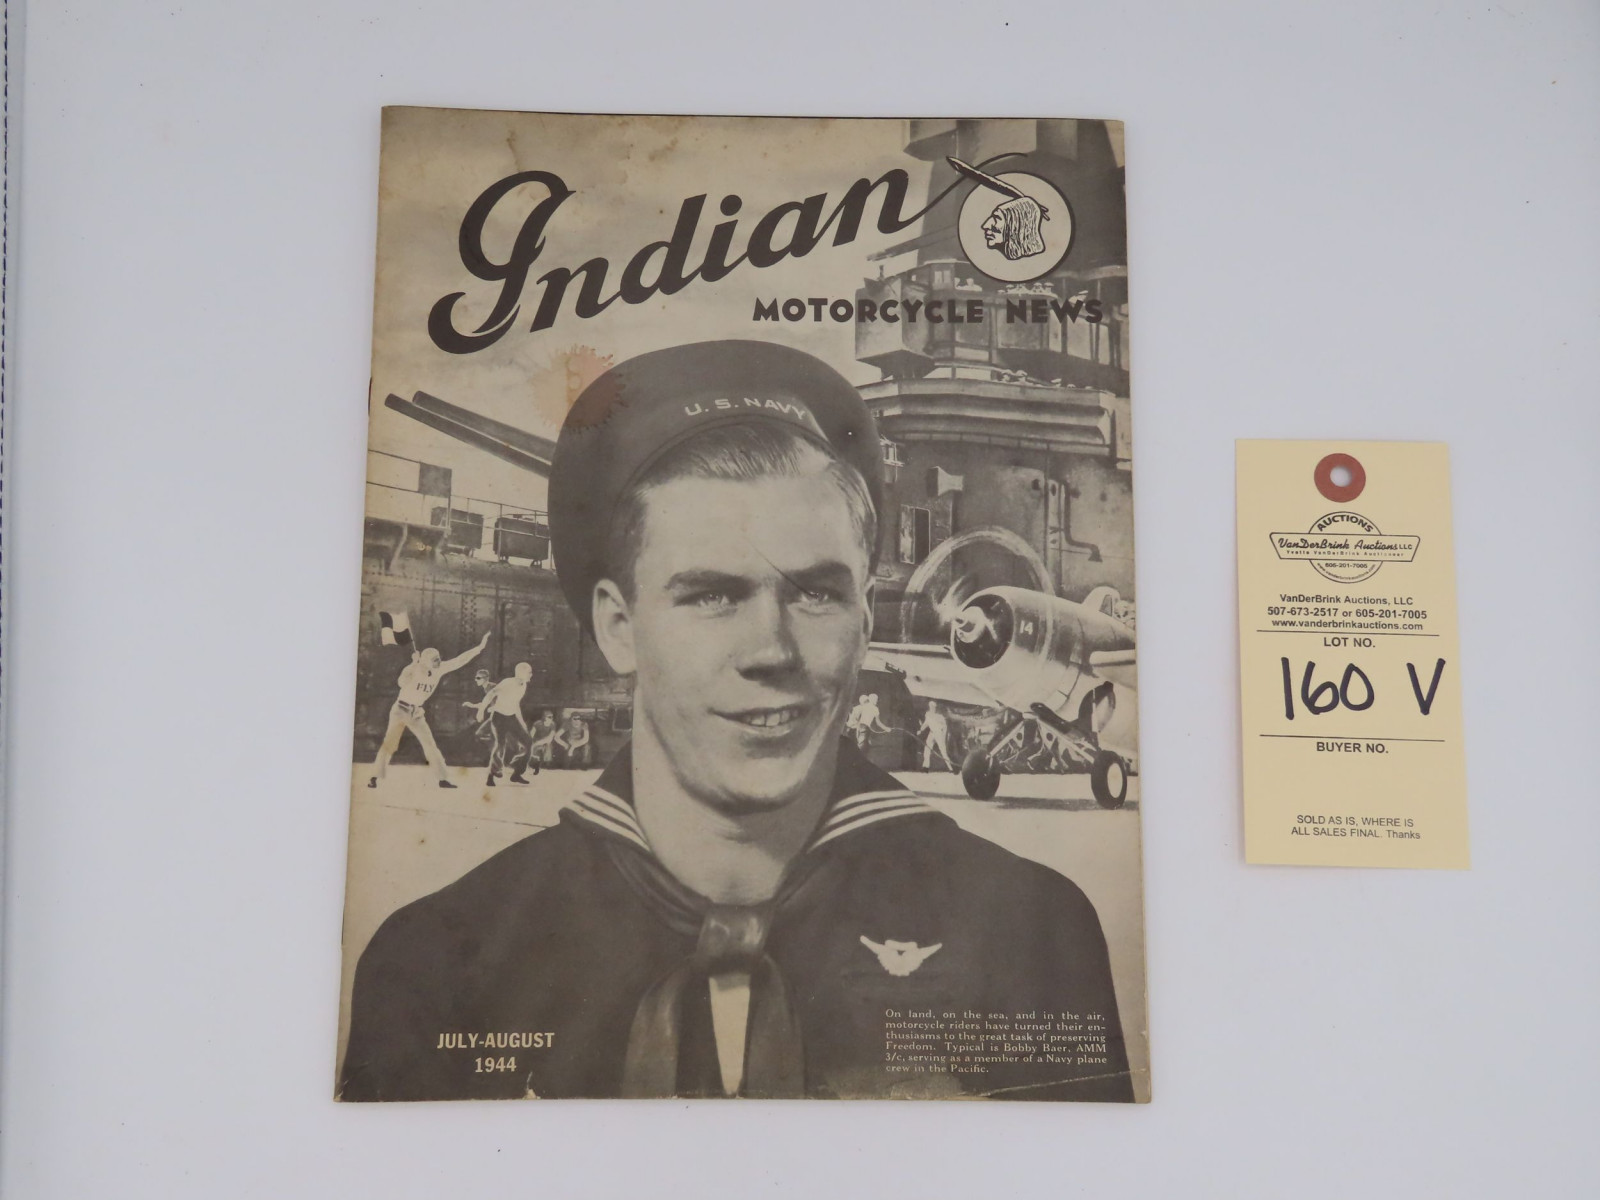 Indian Motorcycle News - 1944 - Image 5